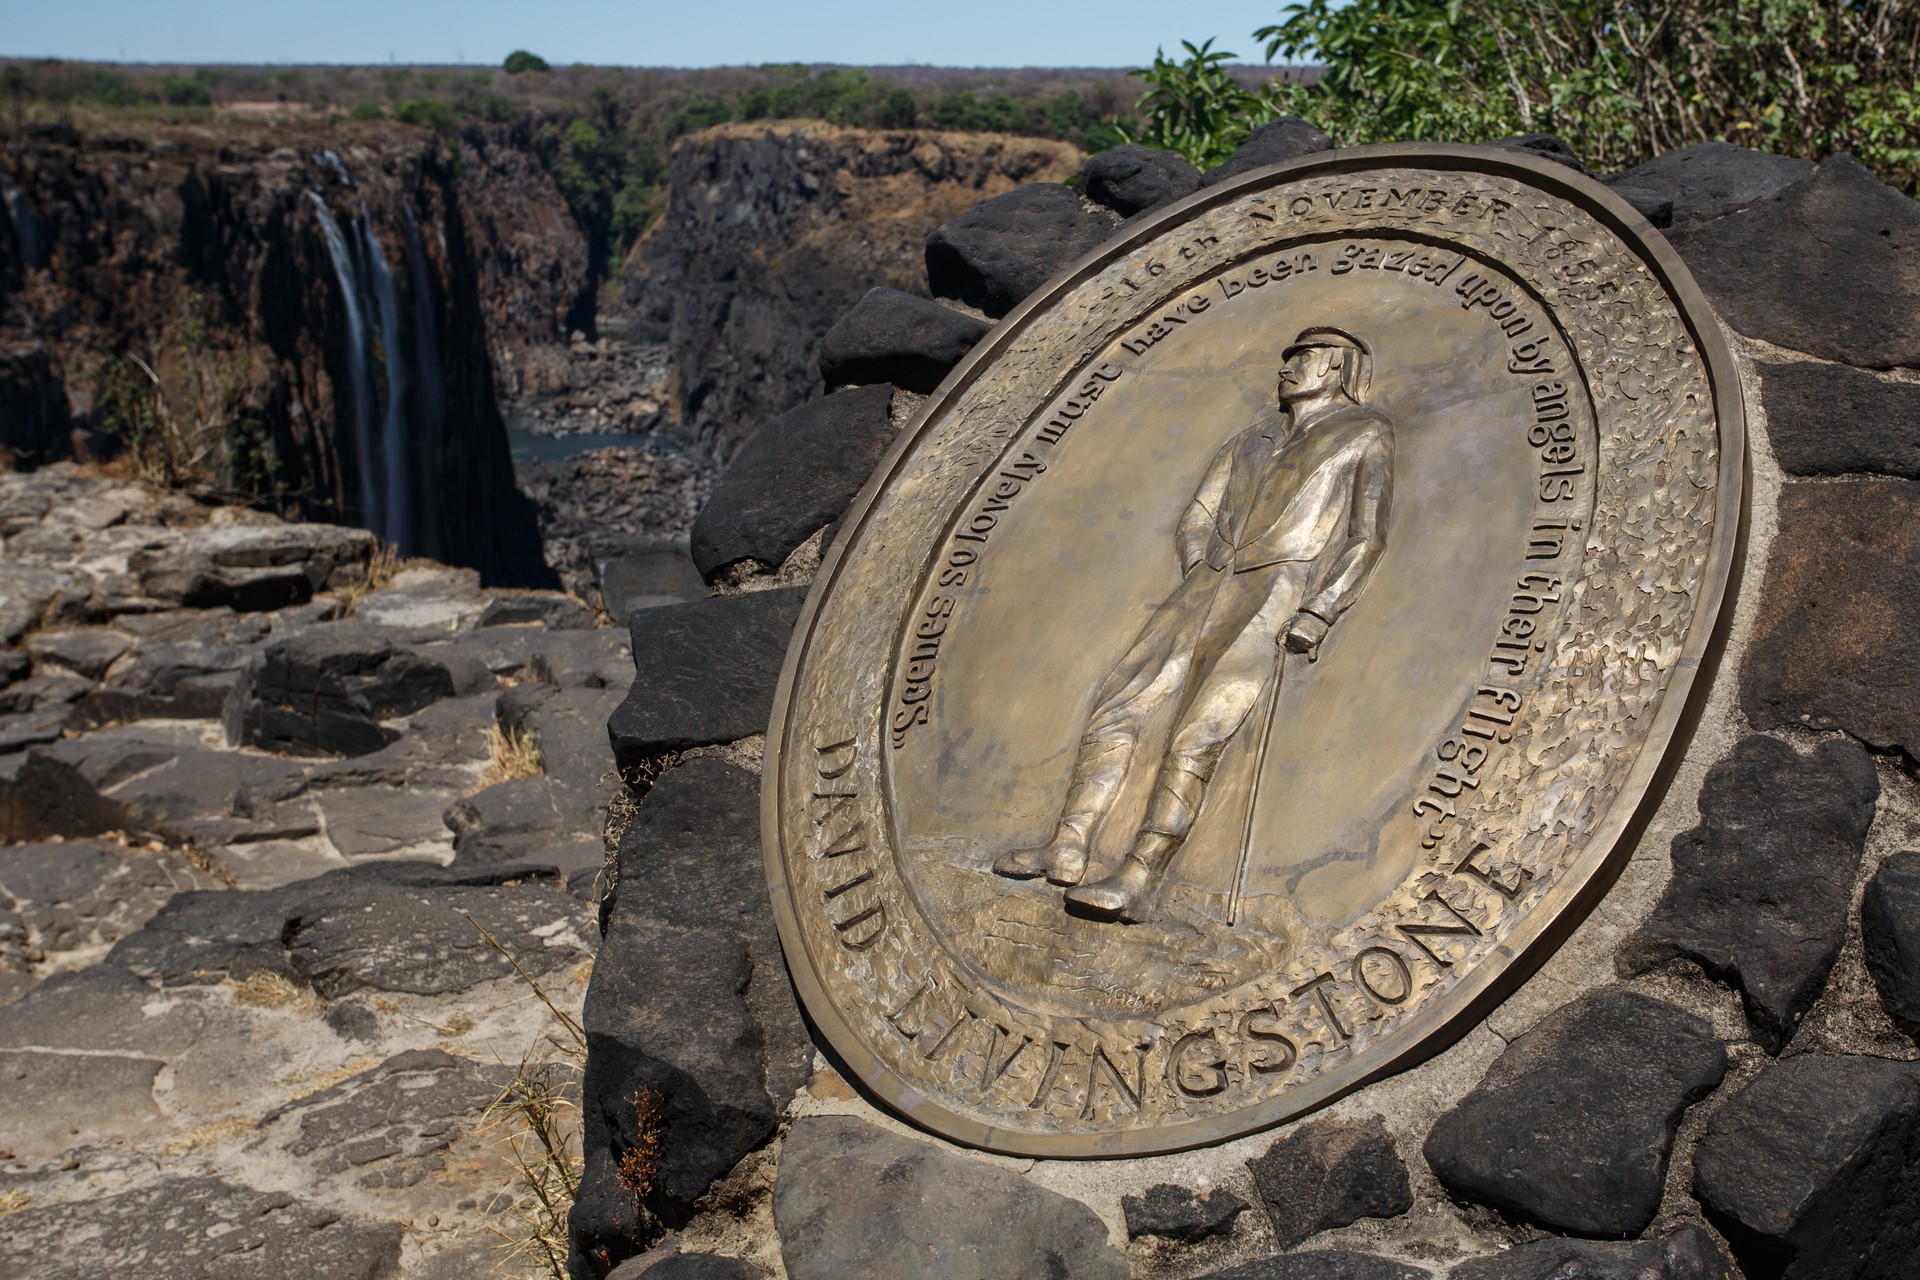 Best things to do in Zambia: Livingstone memorial